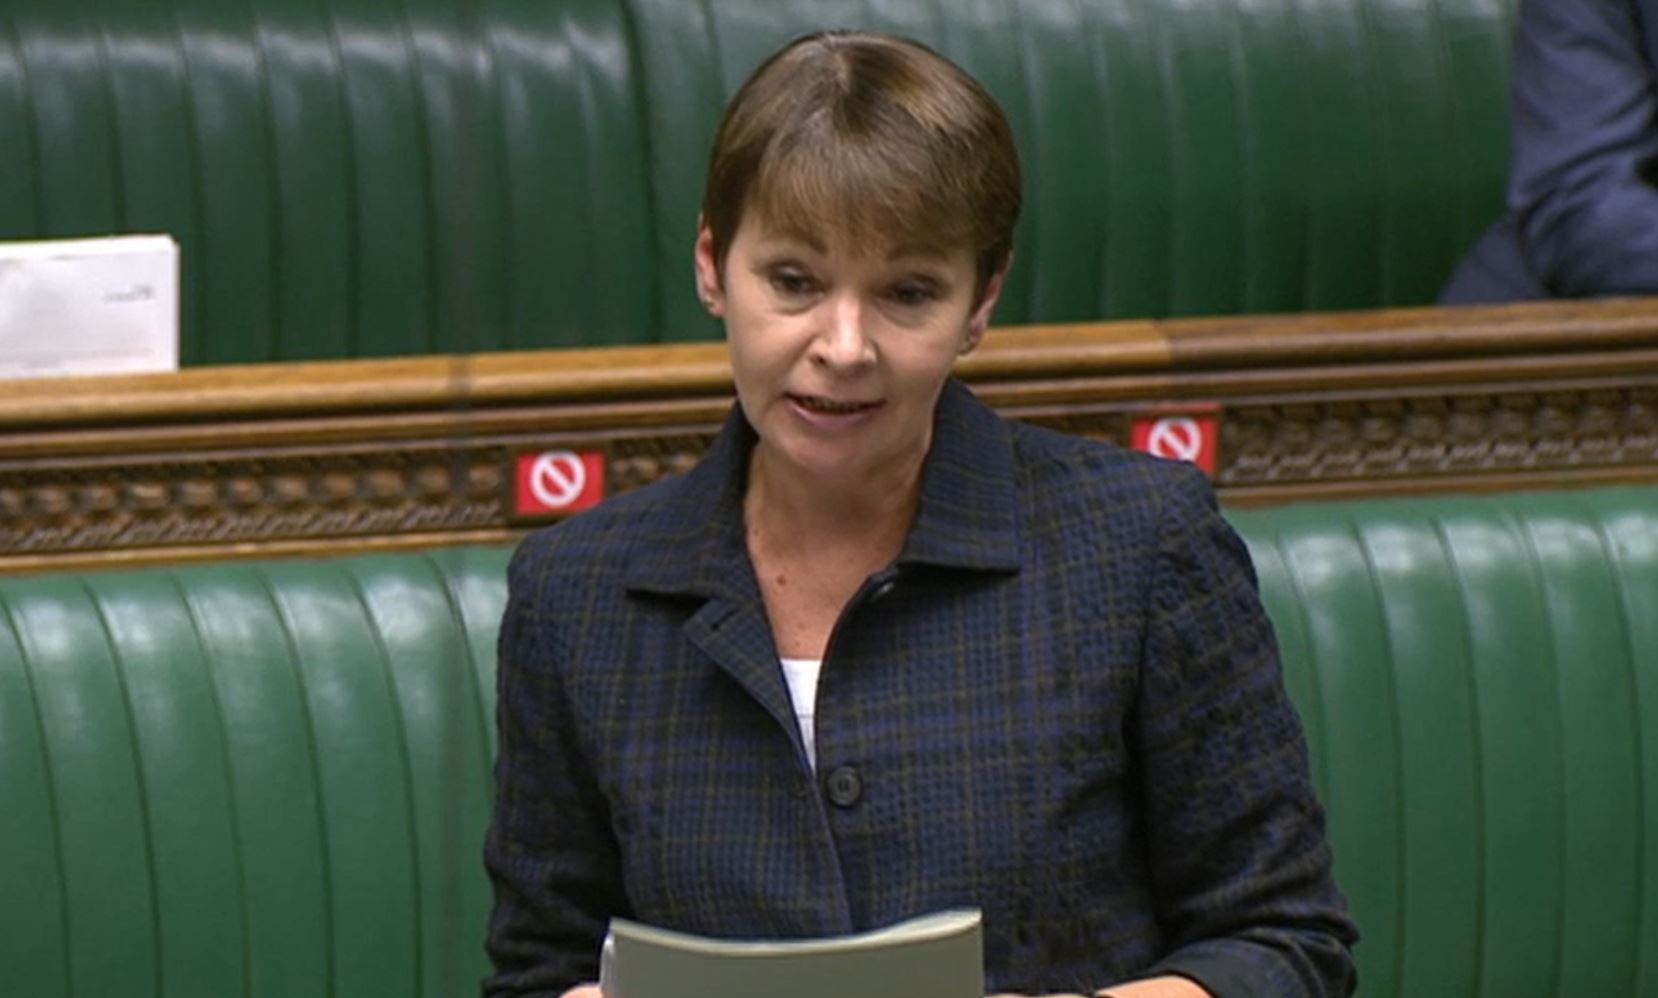 Caroline Lucas joined the Good Law Project in bringing the case